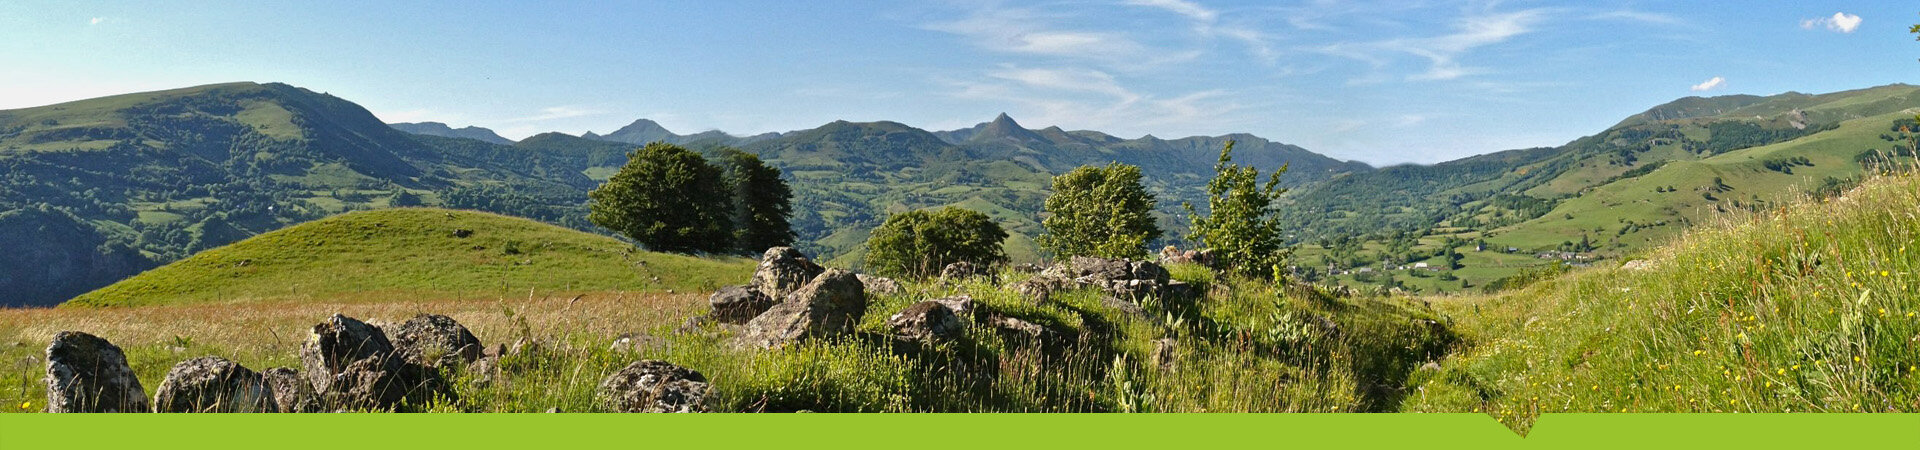 Sorties montagne cantal